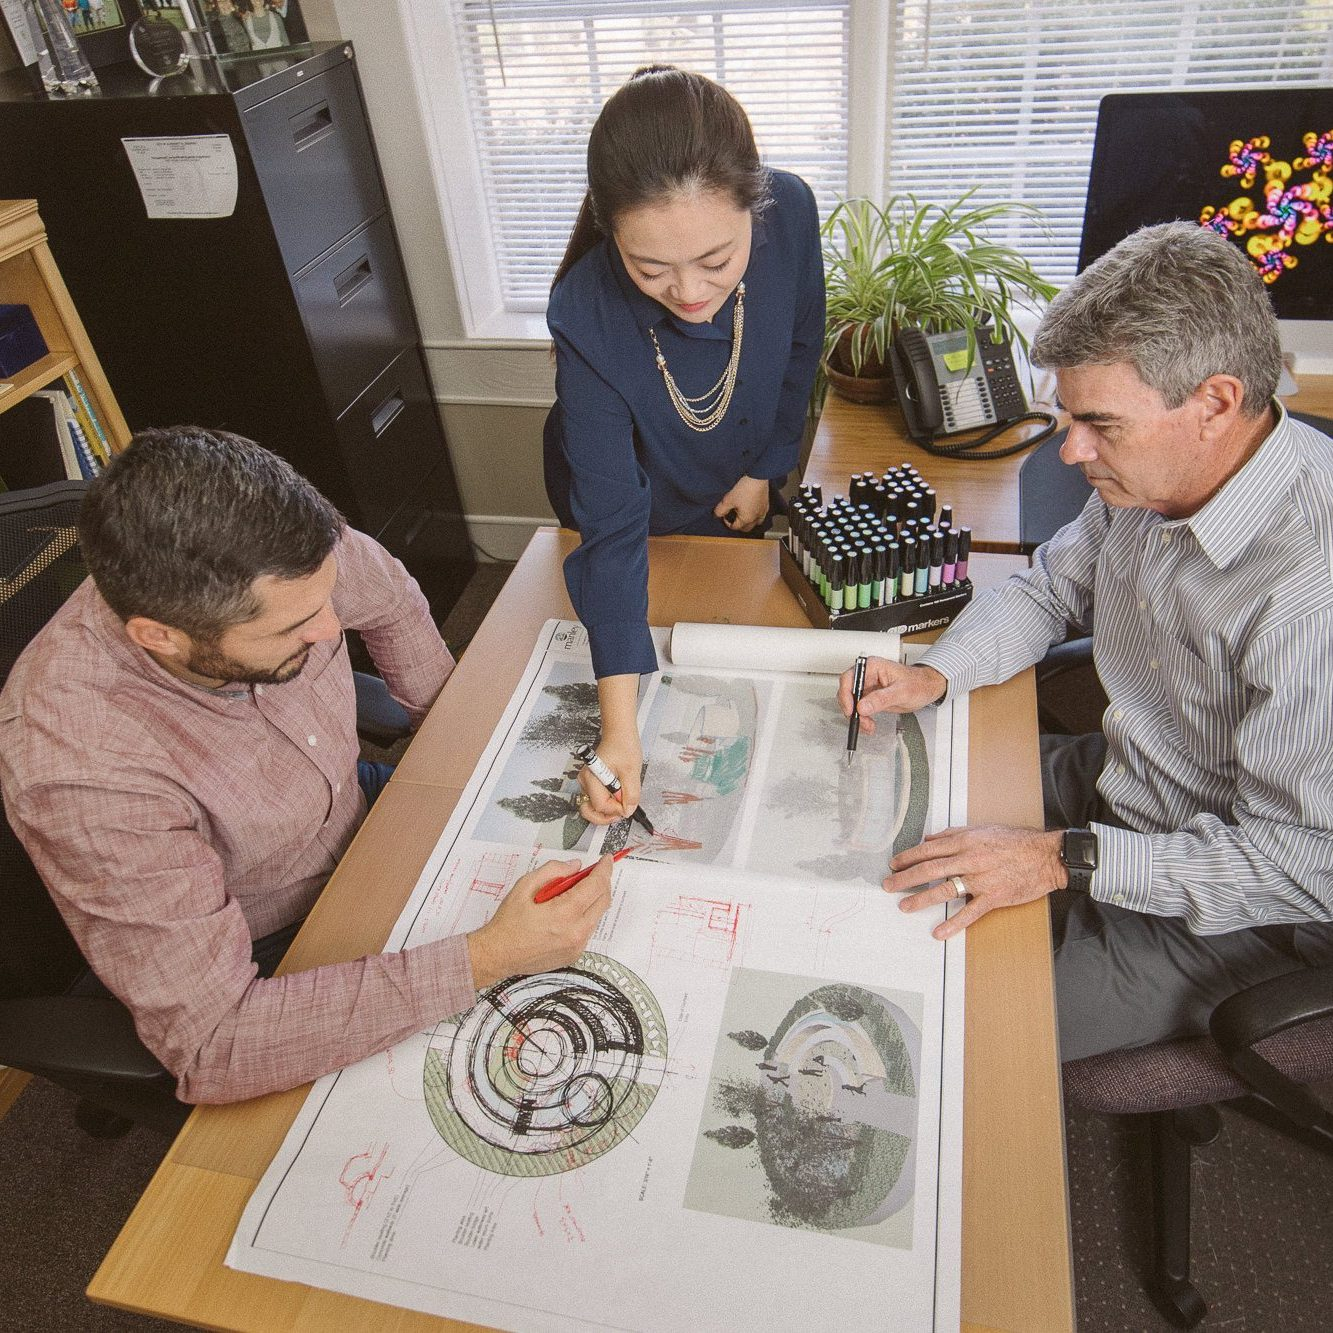 Three landscaping architects working on blueprints together at Manley Land Design office